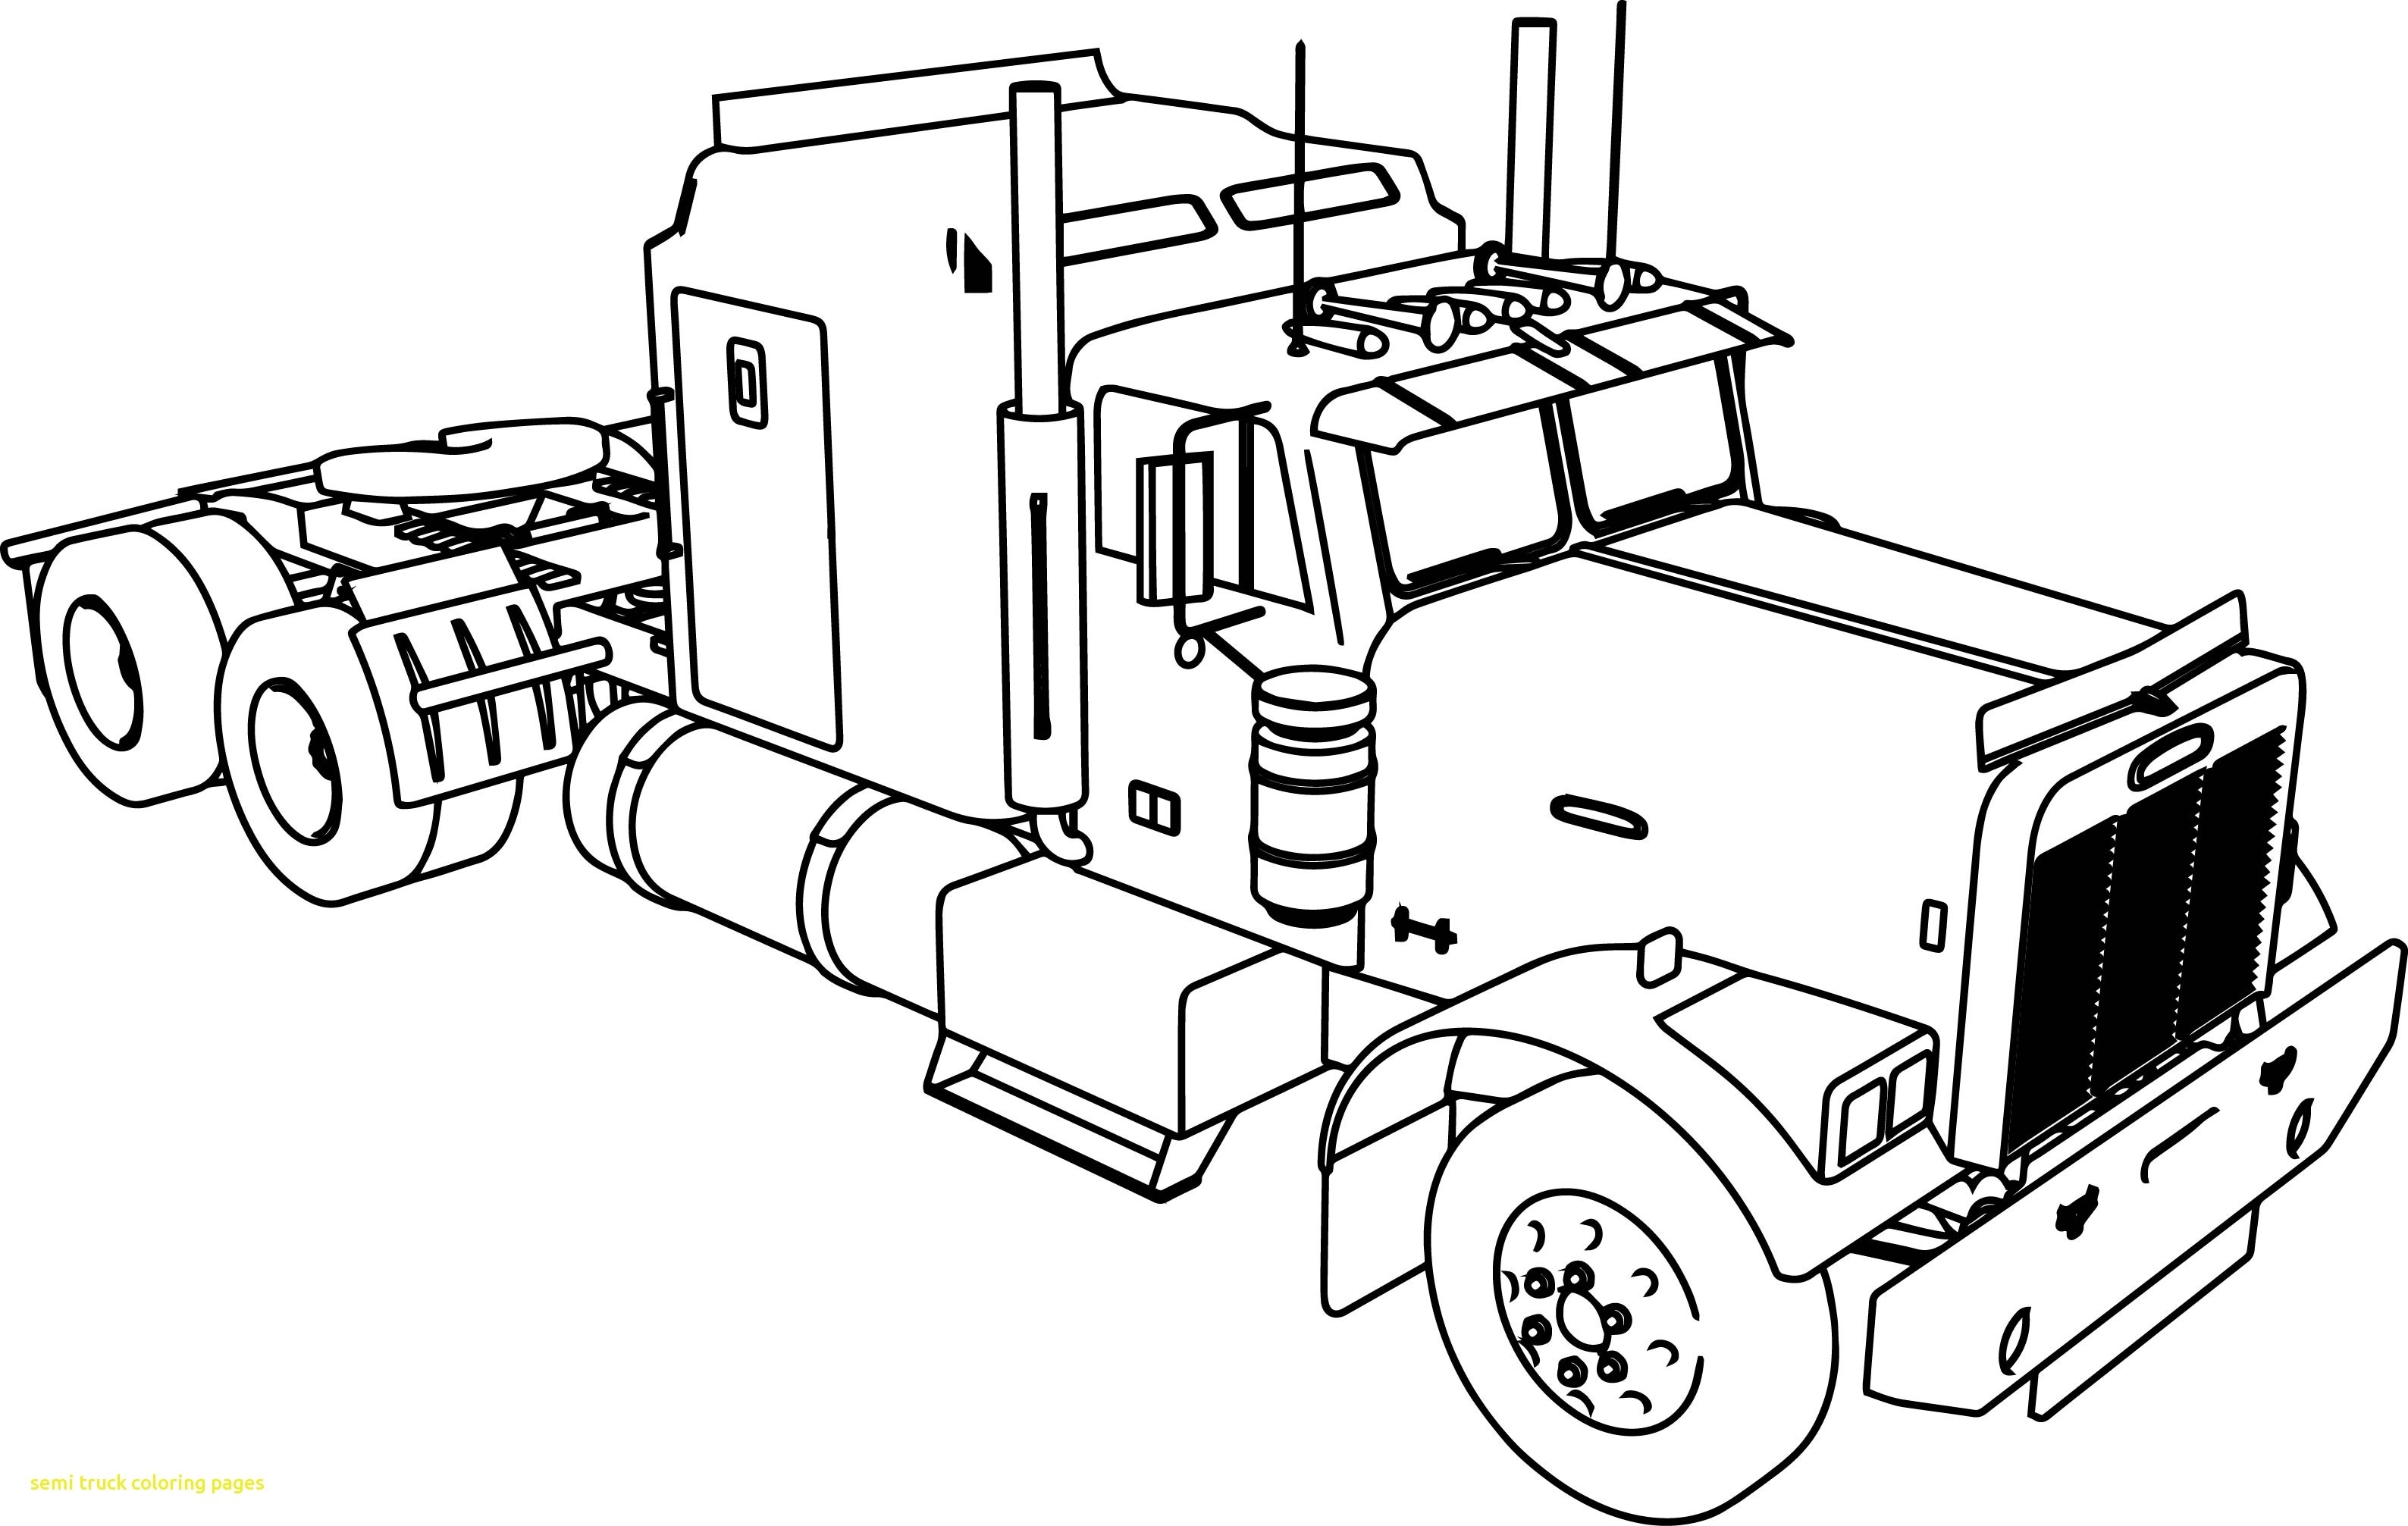 tanker truck coloring page tanker truck coloring page free printable truck activity coloring tanker truck page